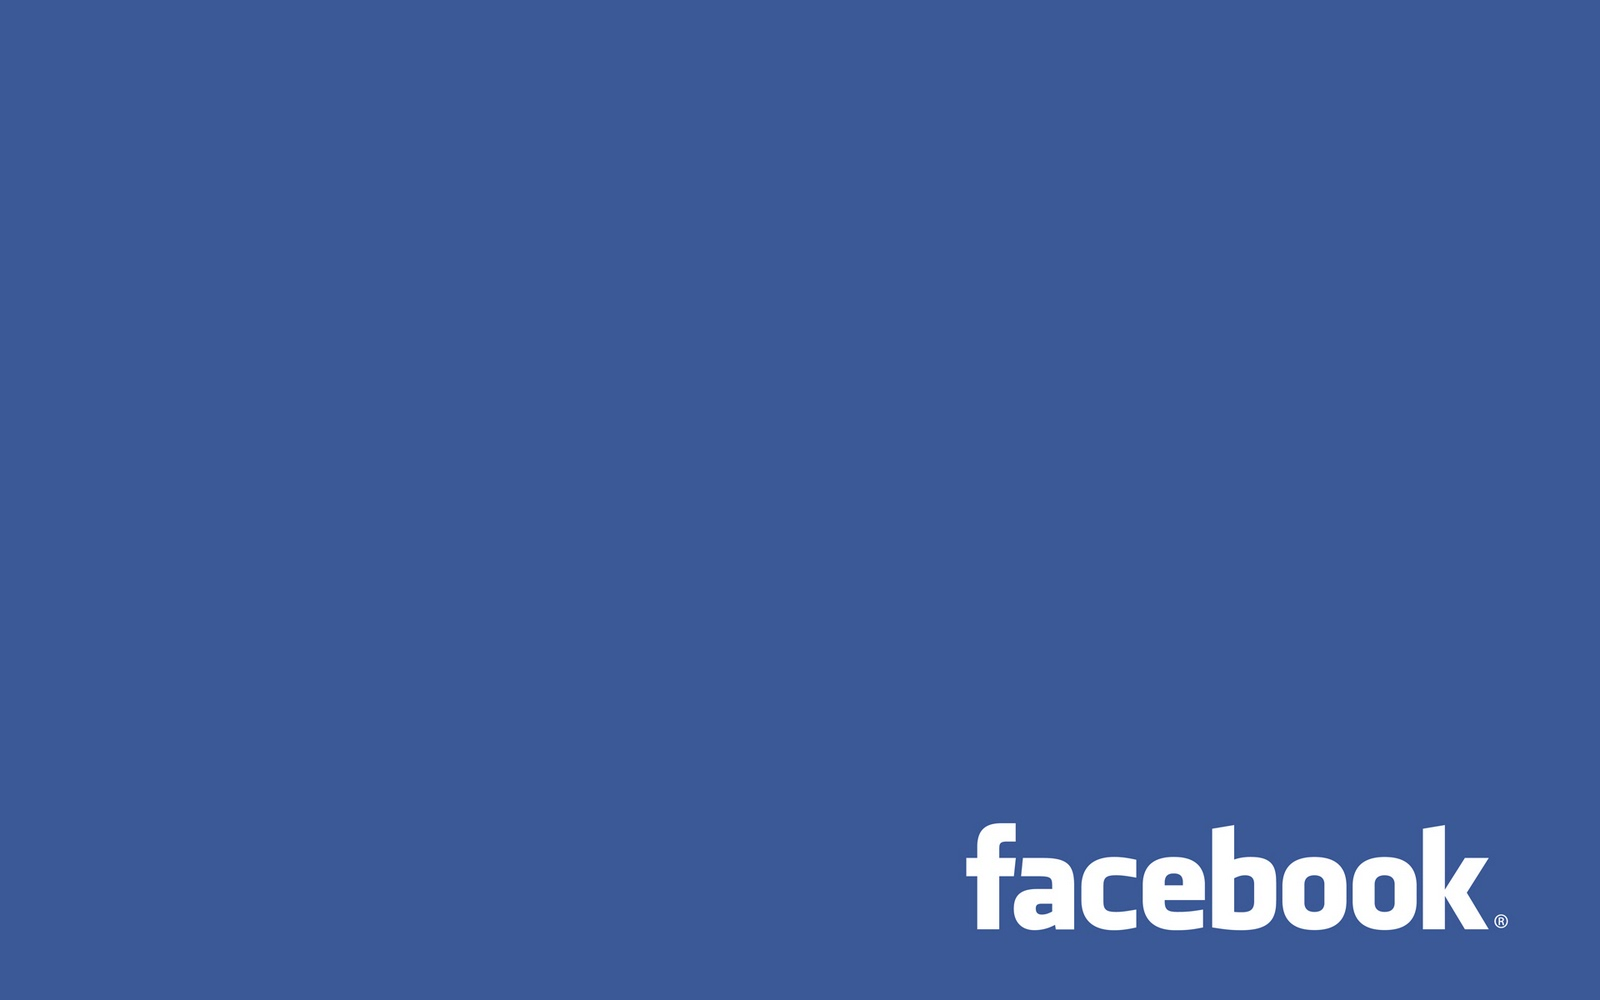 Facebook big blue